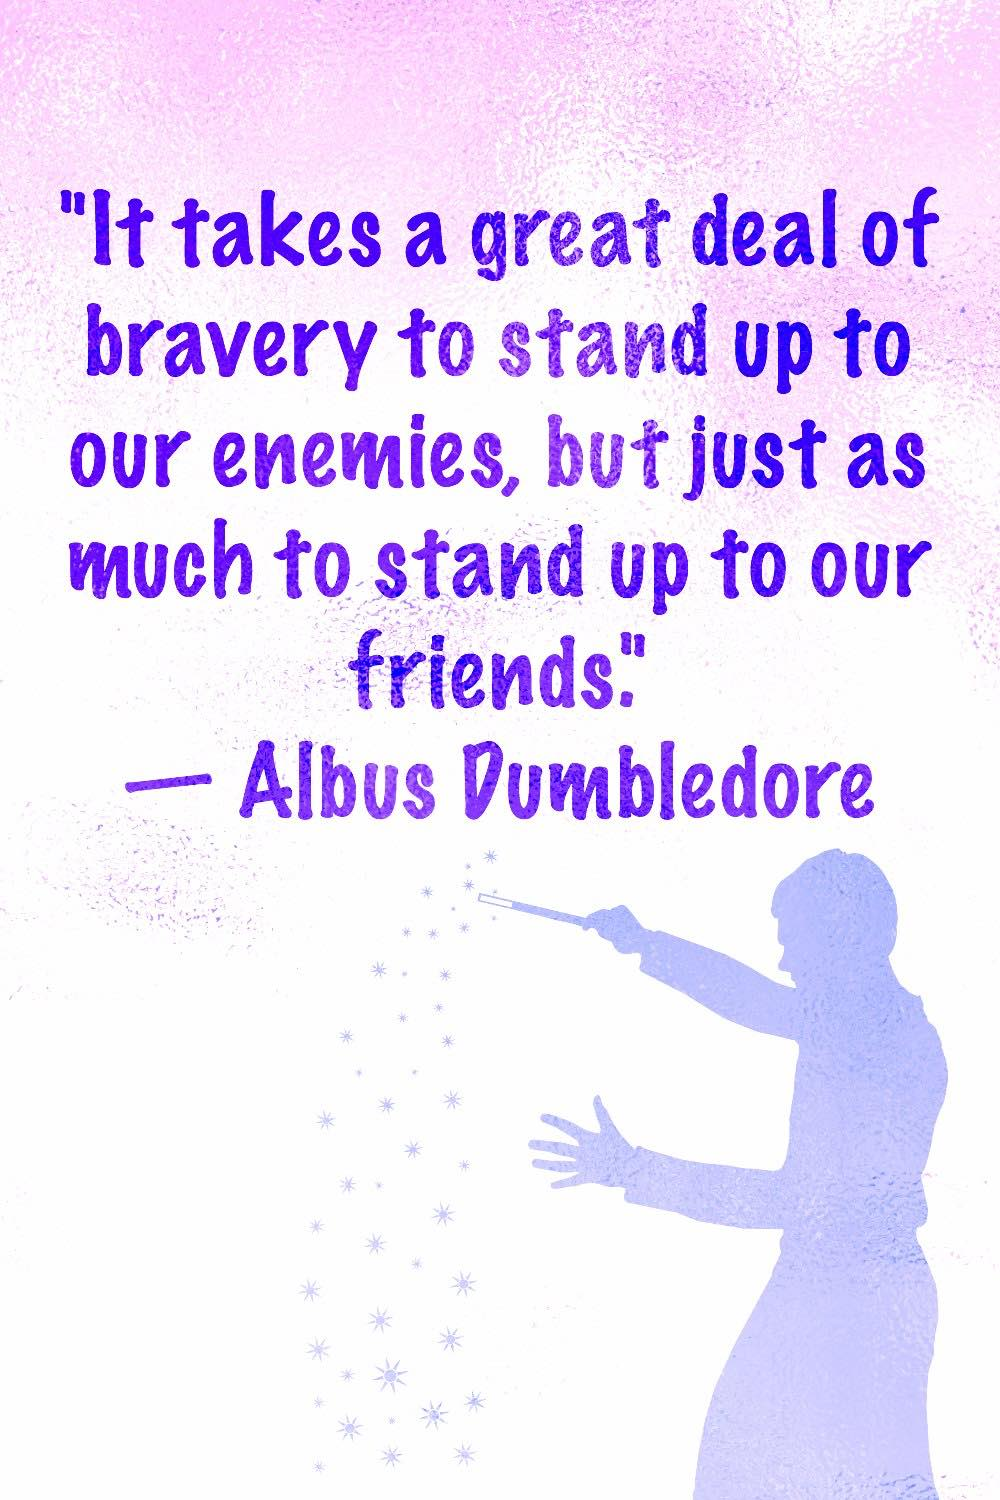 Magical Harry Potter quotes to inspire